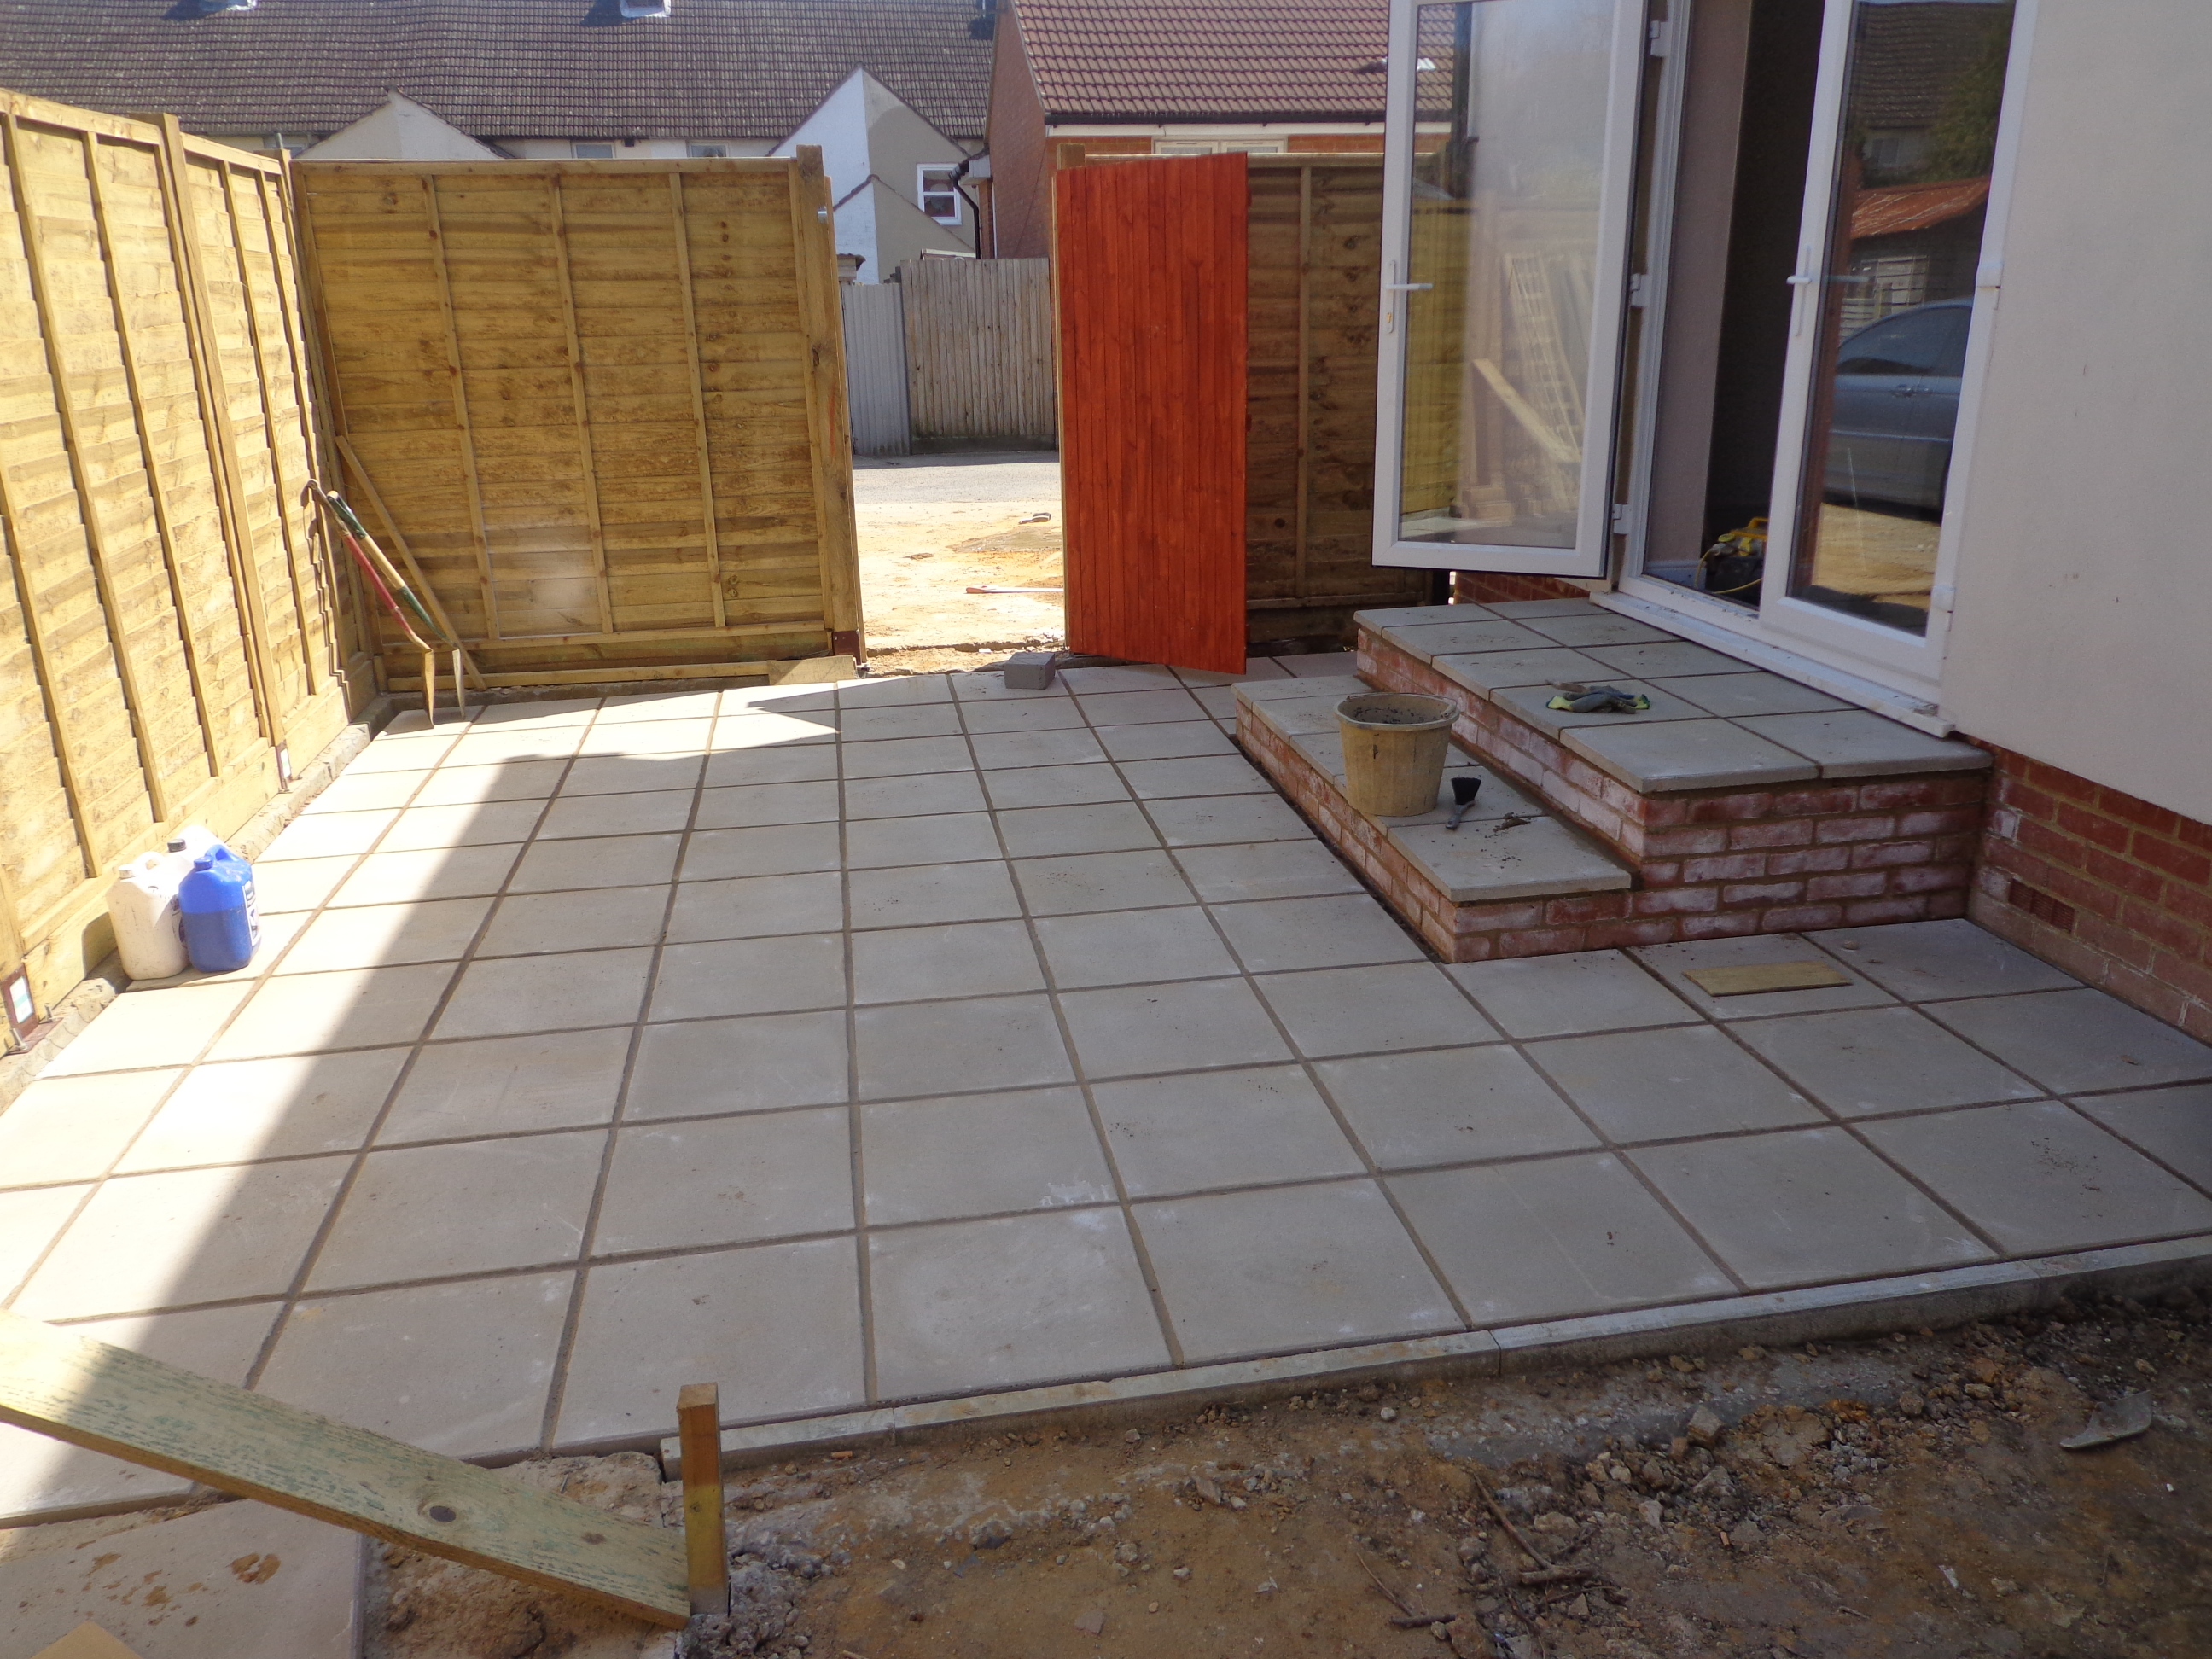 Patios | Ashford Fencing and Gardening Services on Square Patio Designs  id=71453